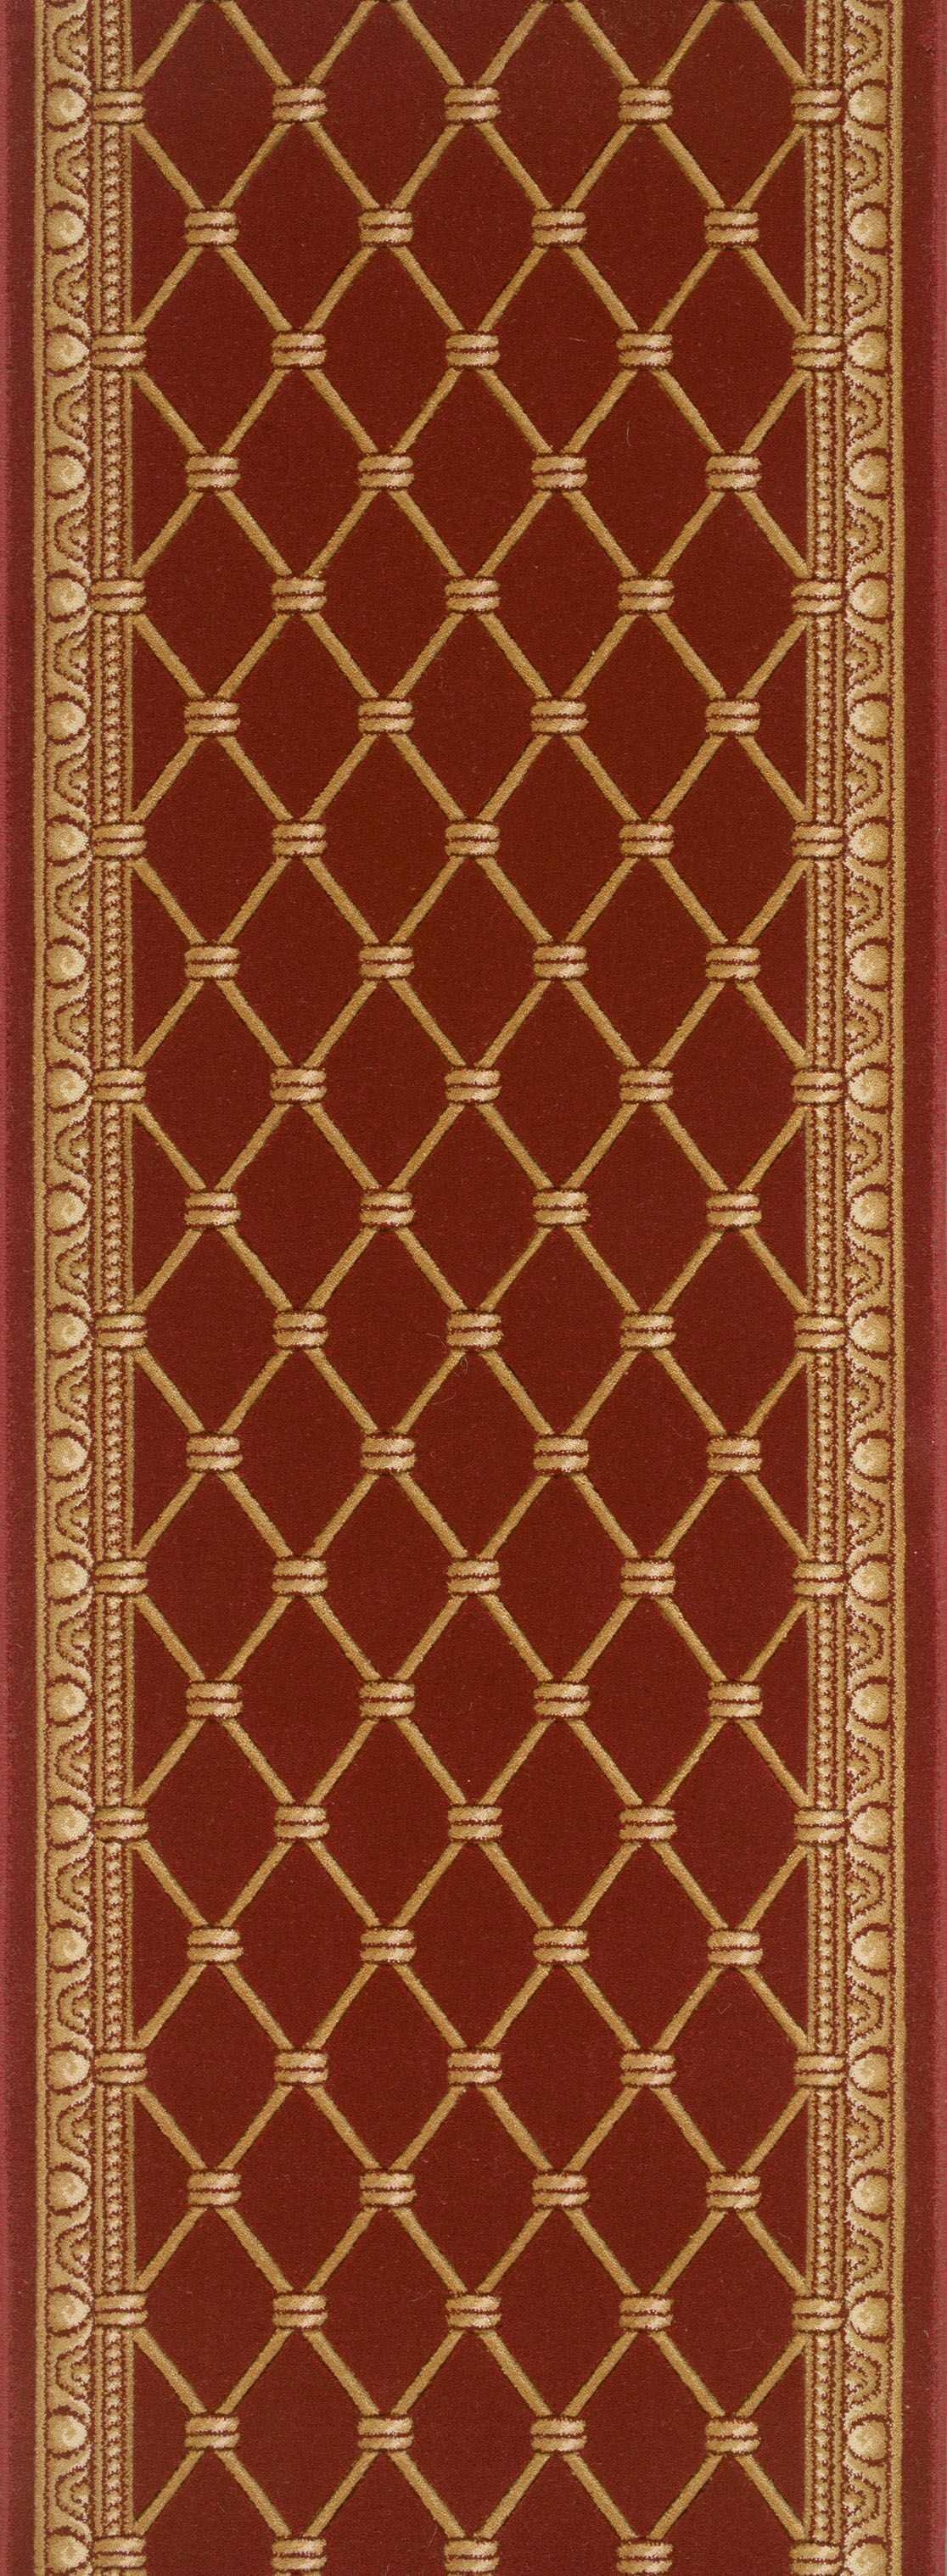 Township Red Area Rug Rug Size: Runner 2'7